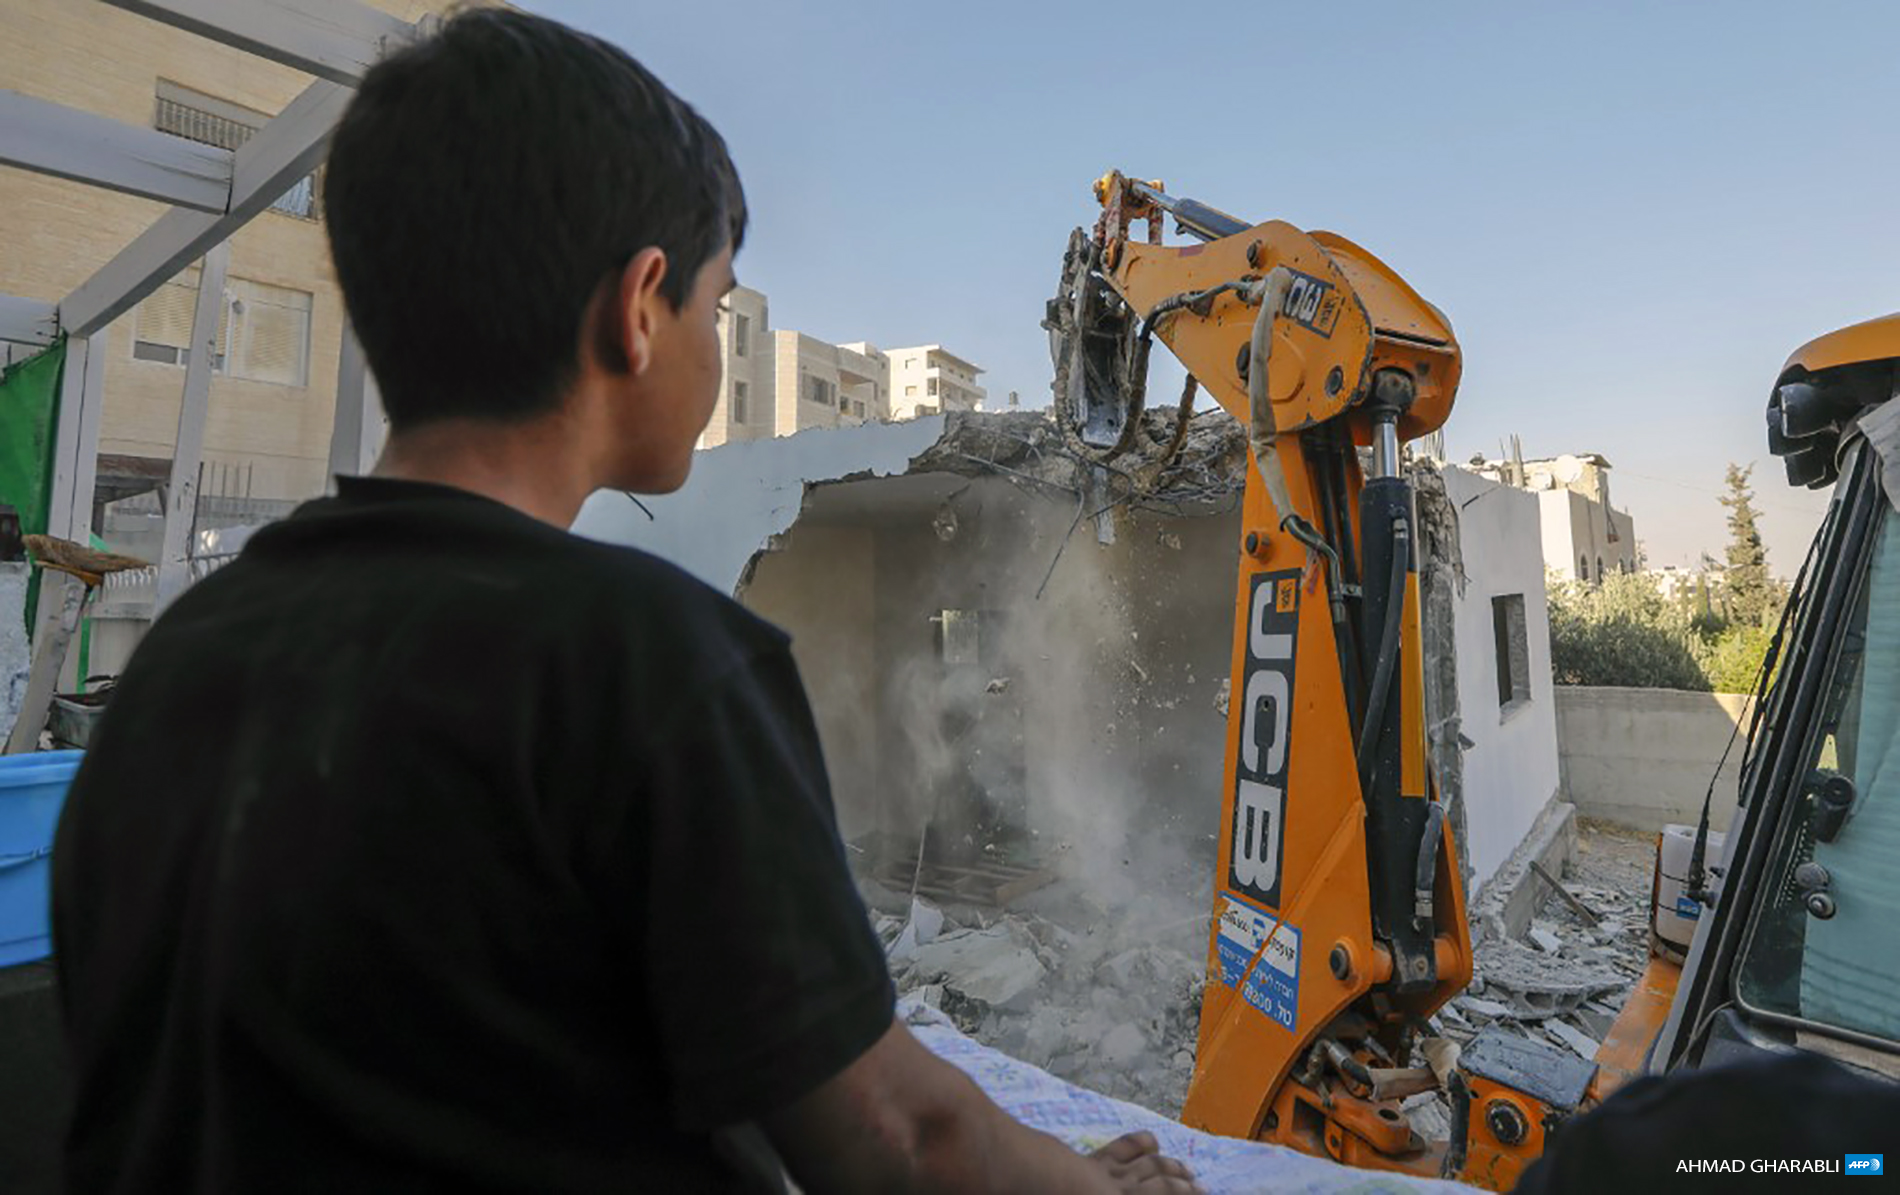 A Palestinian boy watches as an excavator hired by his family demolishes their family home in the Al-Tur neighborhood of East Jerusalem on July 2, 2020. (Photo: AFP / Ahmad Gharabli)